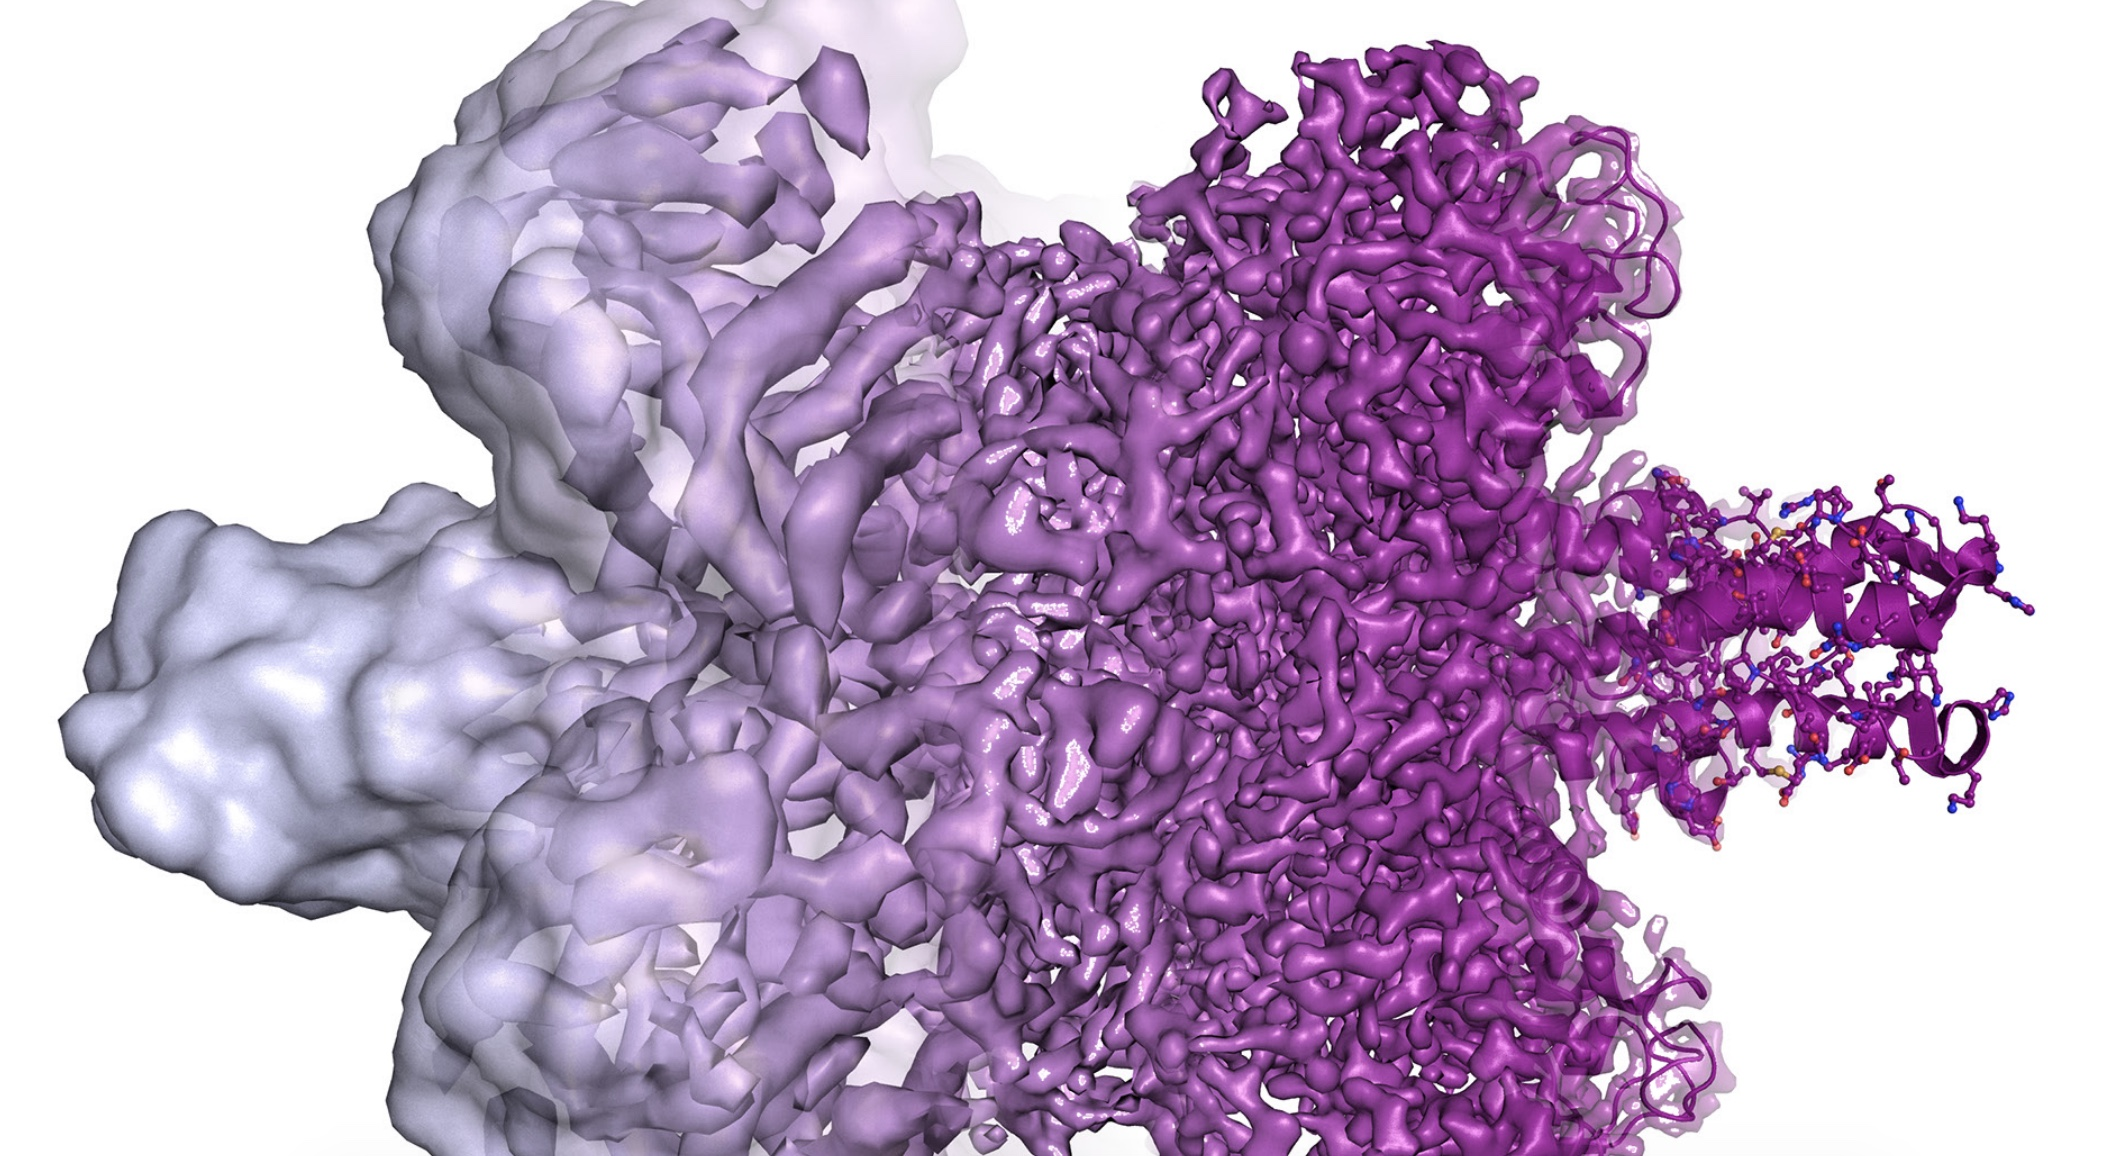 Chemistry Nobel for Cryo-Electron Microscopes, Machines That Can 'See' the Atoms of Life